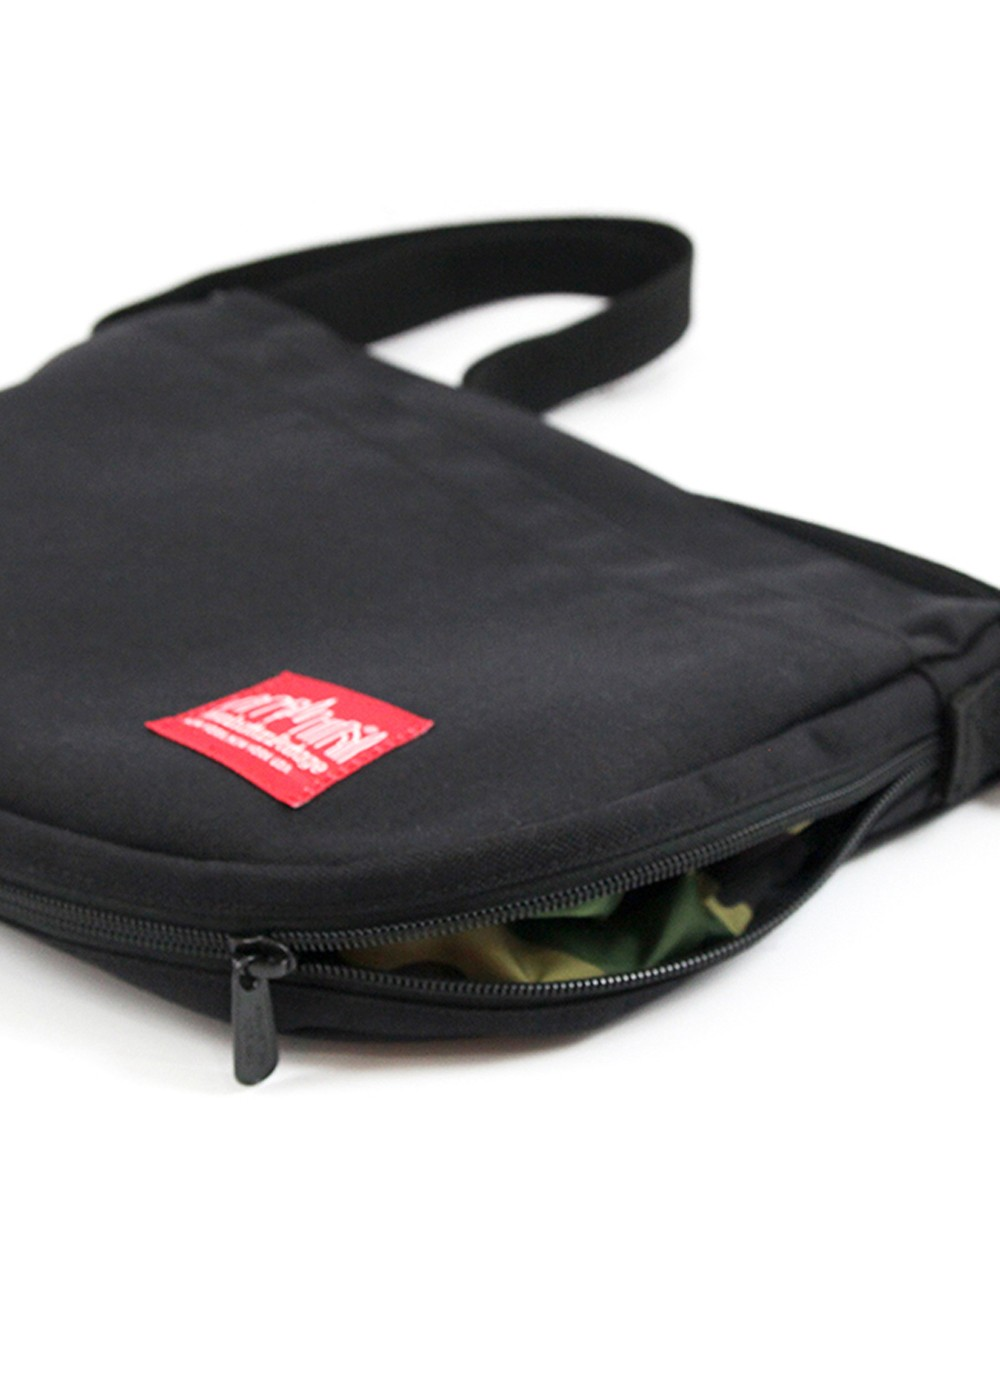 Columbus Circle Shoulder Bag|迷彩/ブラック|ショルダーバッグ|Manhattan Portage